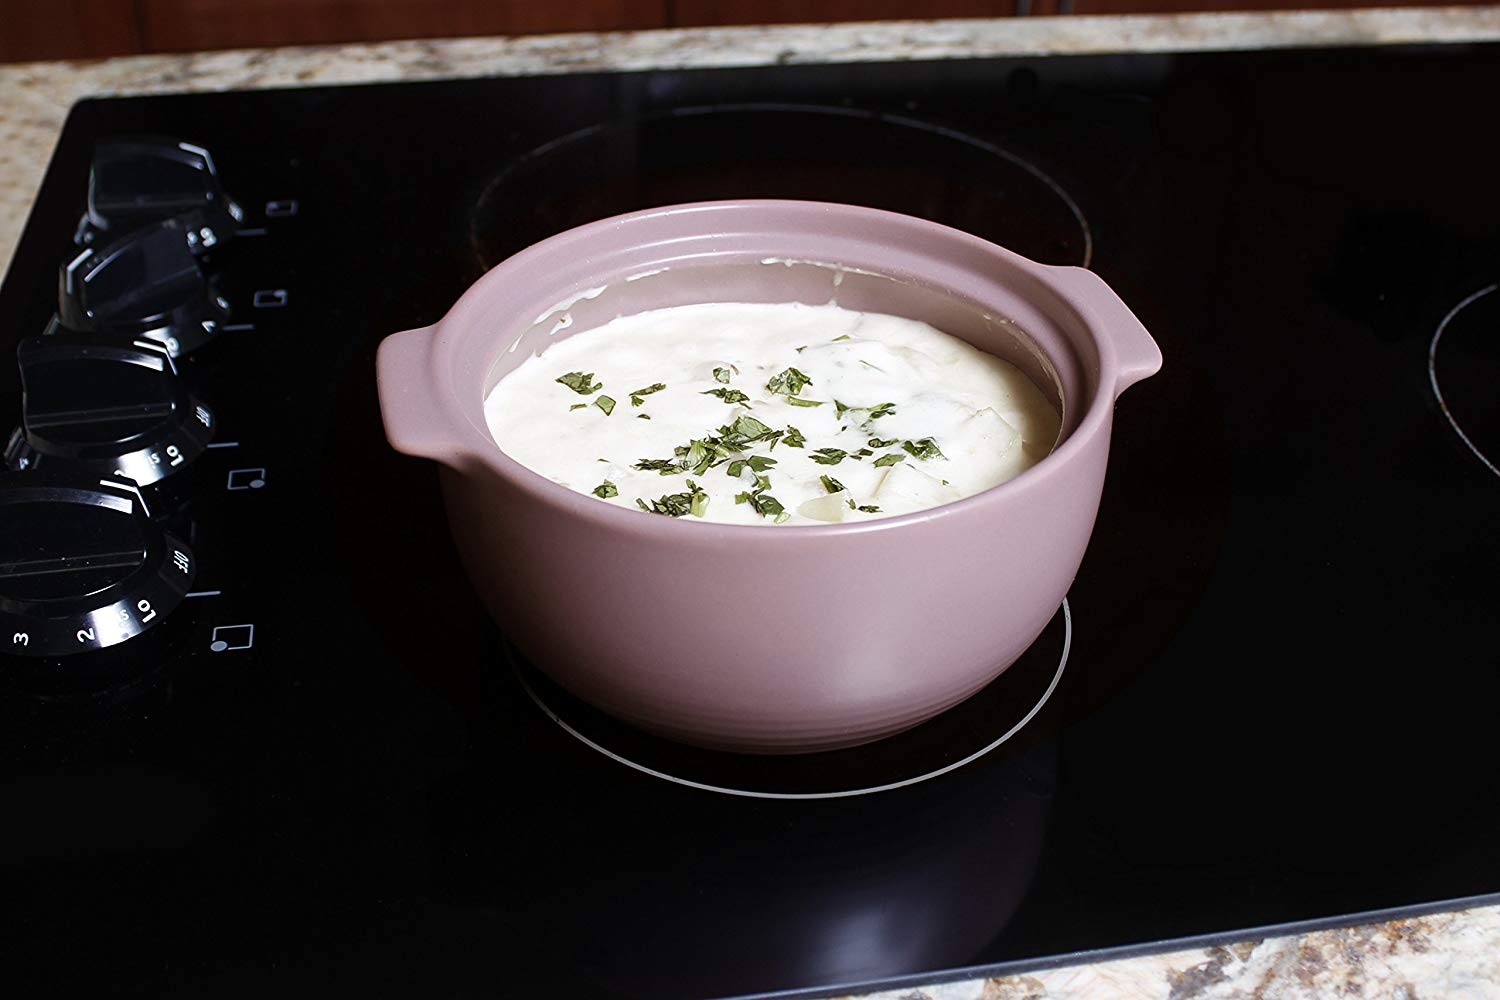 Neoflam ceramic casserole dish cookware for hob and oven